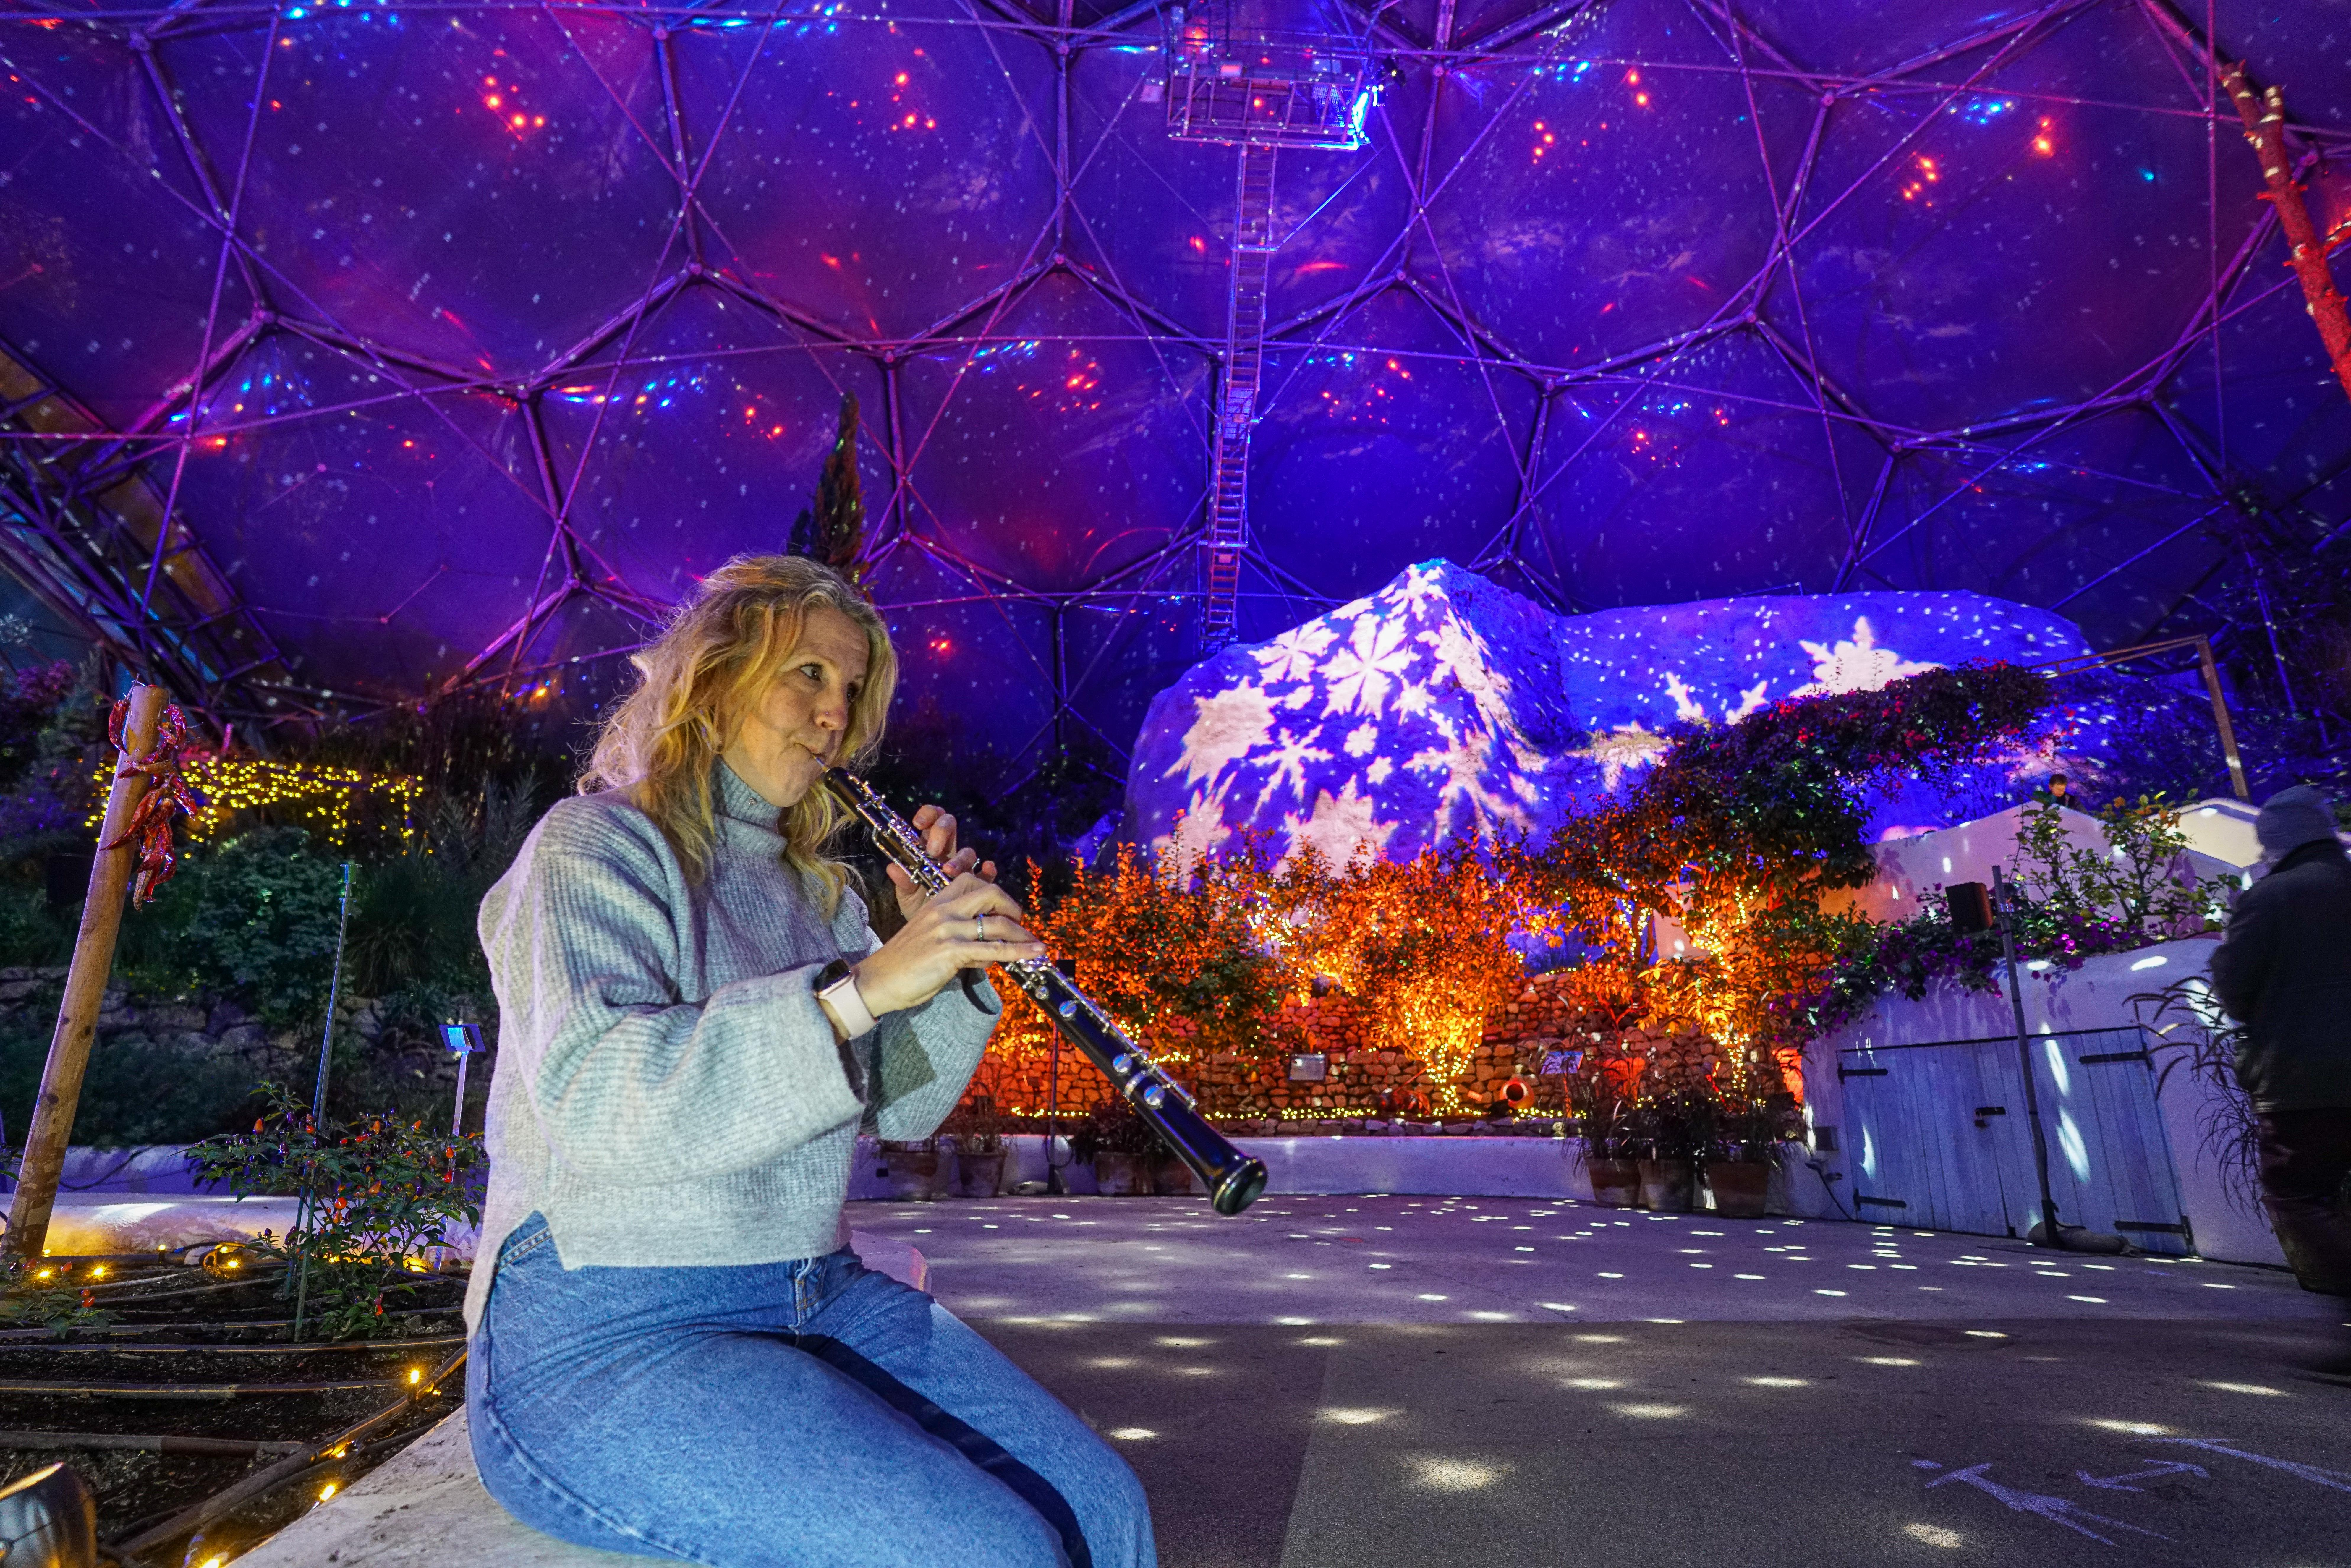 ST AUSTELL, ENGLAND - DECEMBER 03: Musician Tamsin Robinson rehearses for a live performance of festive music under the Christmas lights installation in the Mediterranean biome at the Eden Project on December 3, 2020 in St Austell, England. (Photo by Hugh Hastings/Getty Images)